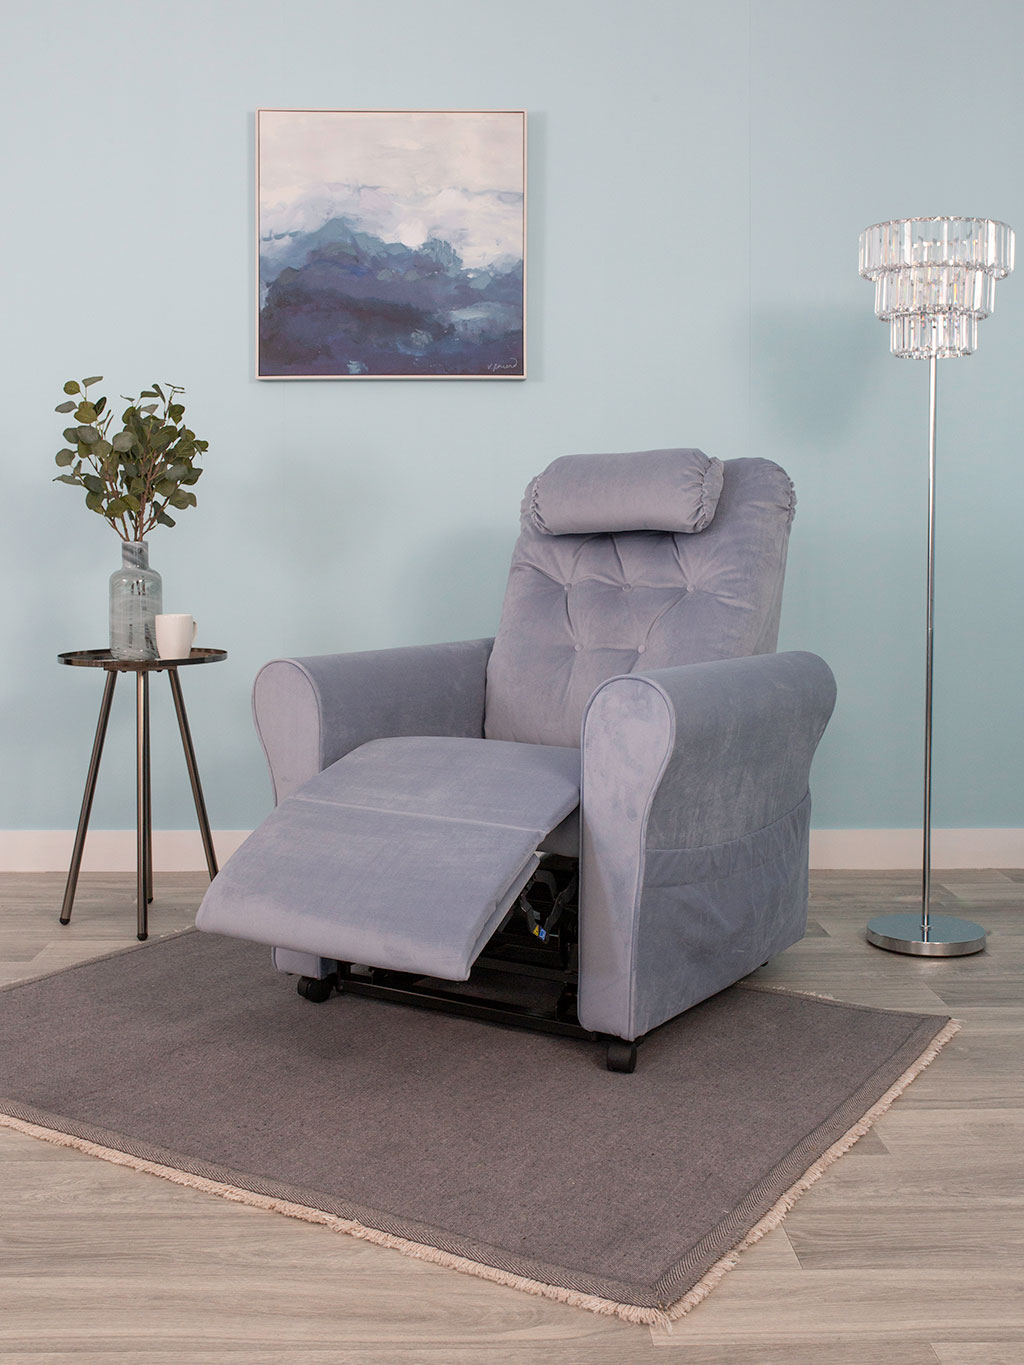 Adjustamatic Conwy rise recliner chair